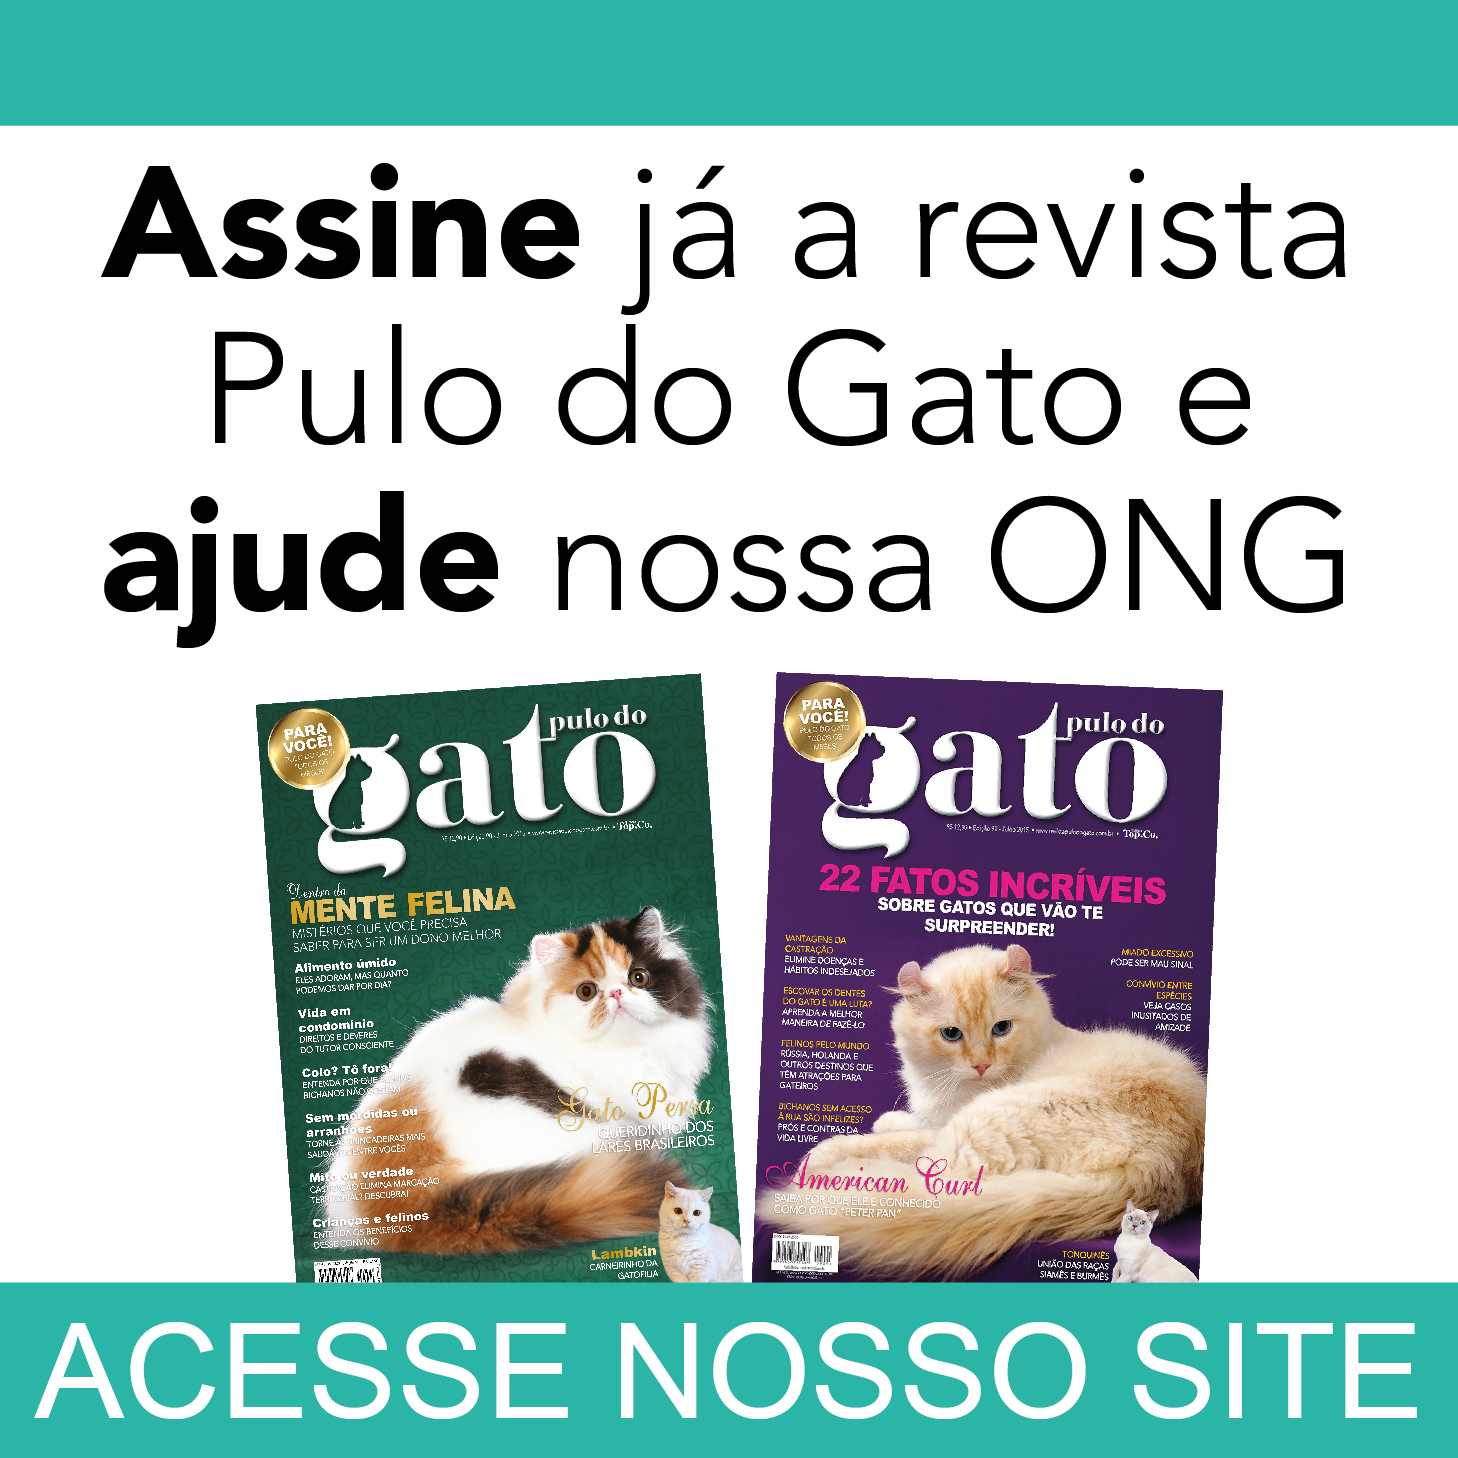 Revista Pulo do Gato